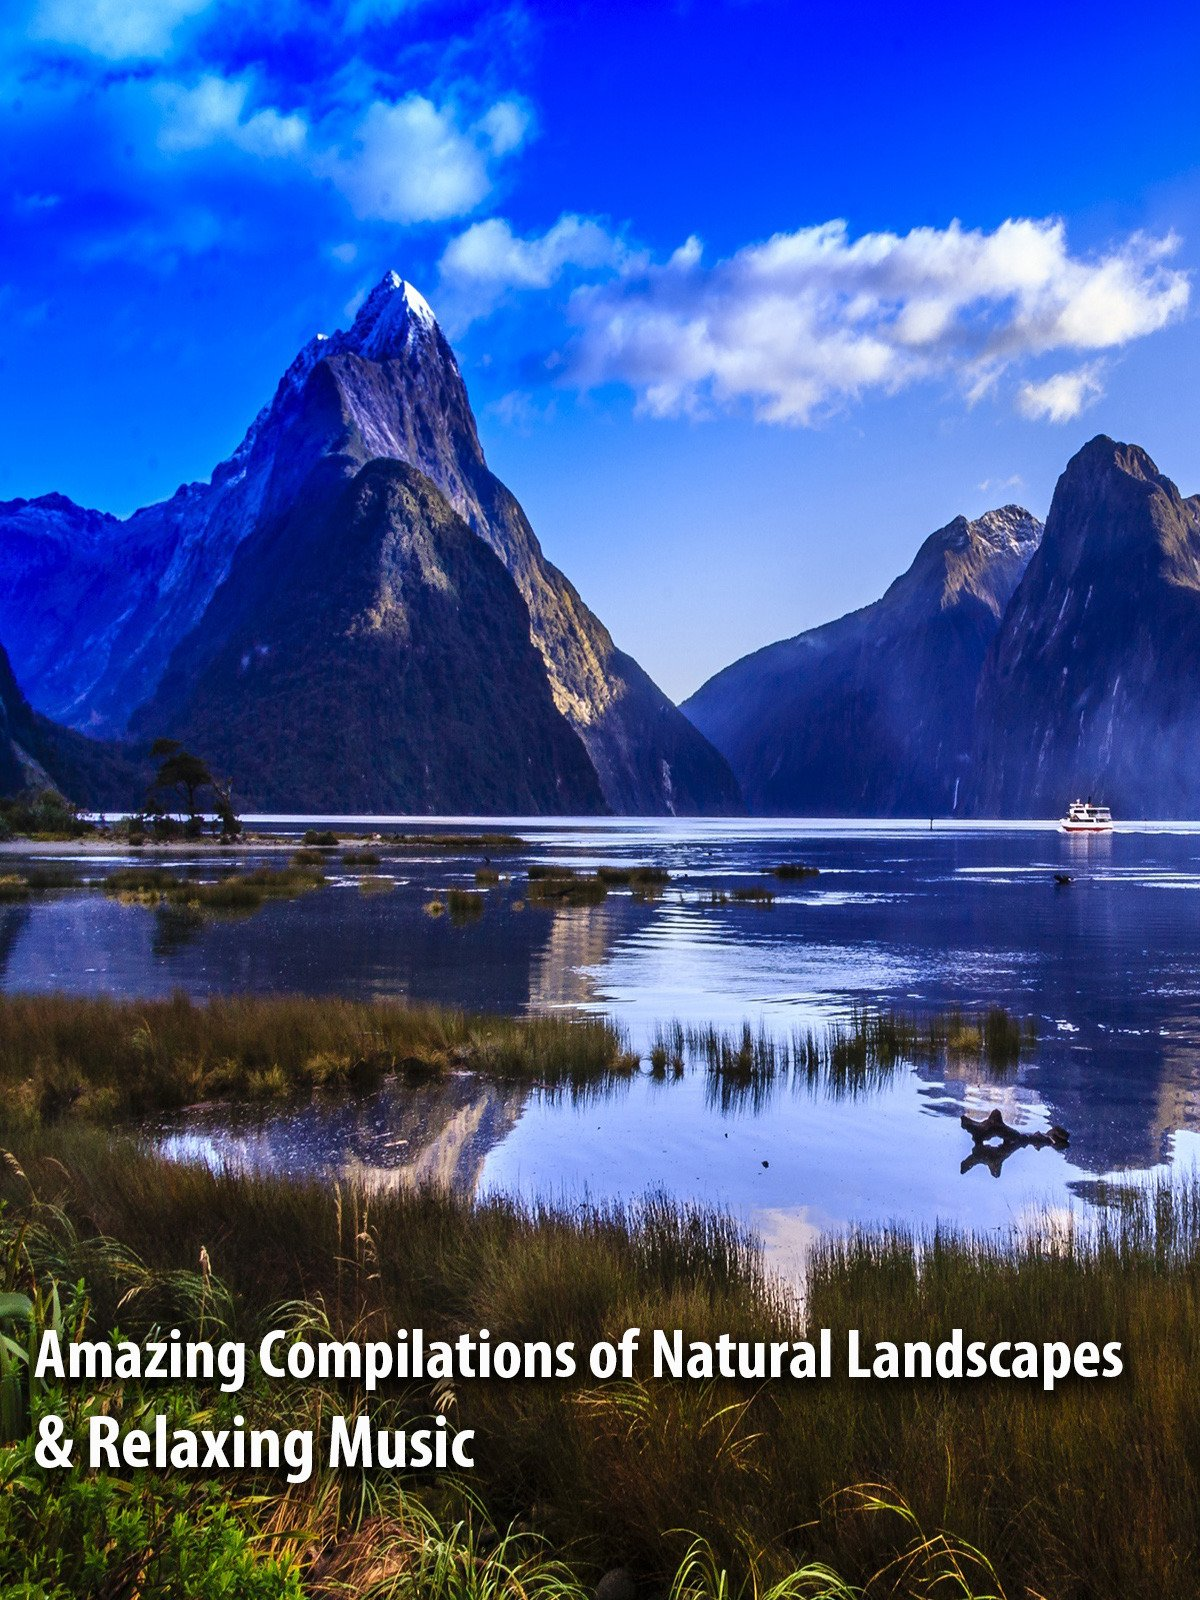 Amazing Compilations of Natural Landscapes & Relaxing Music